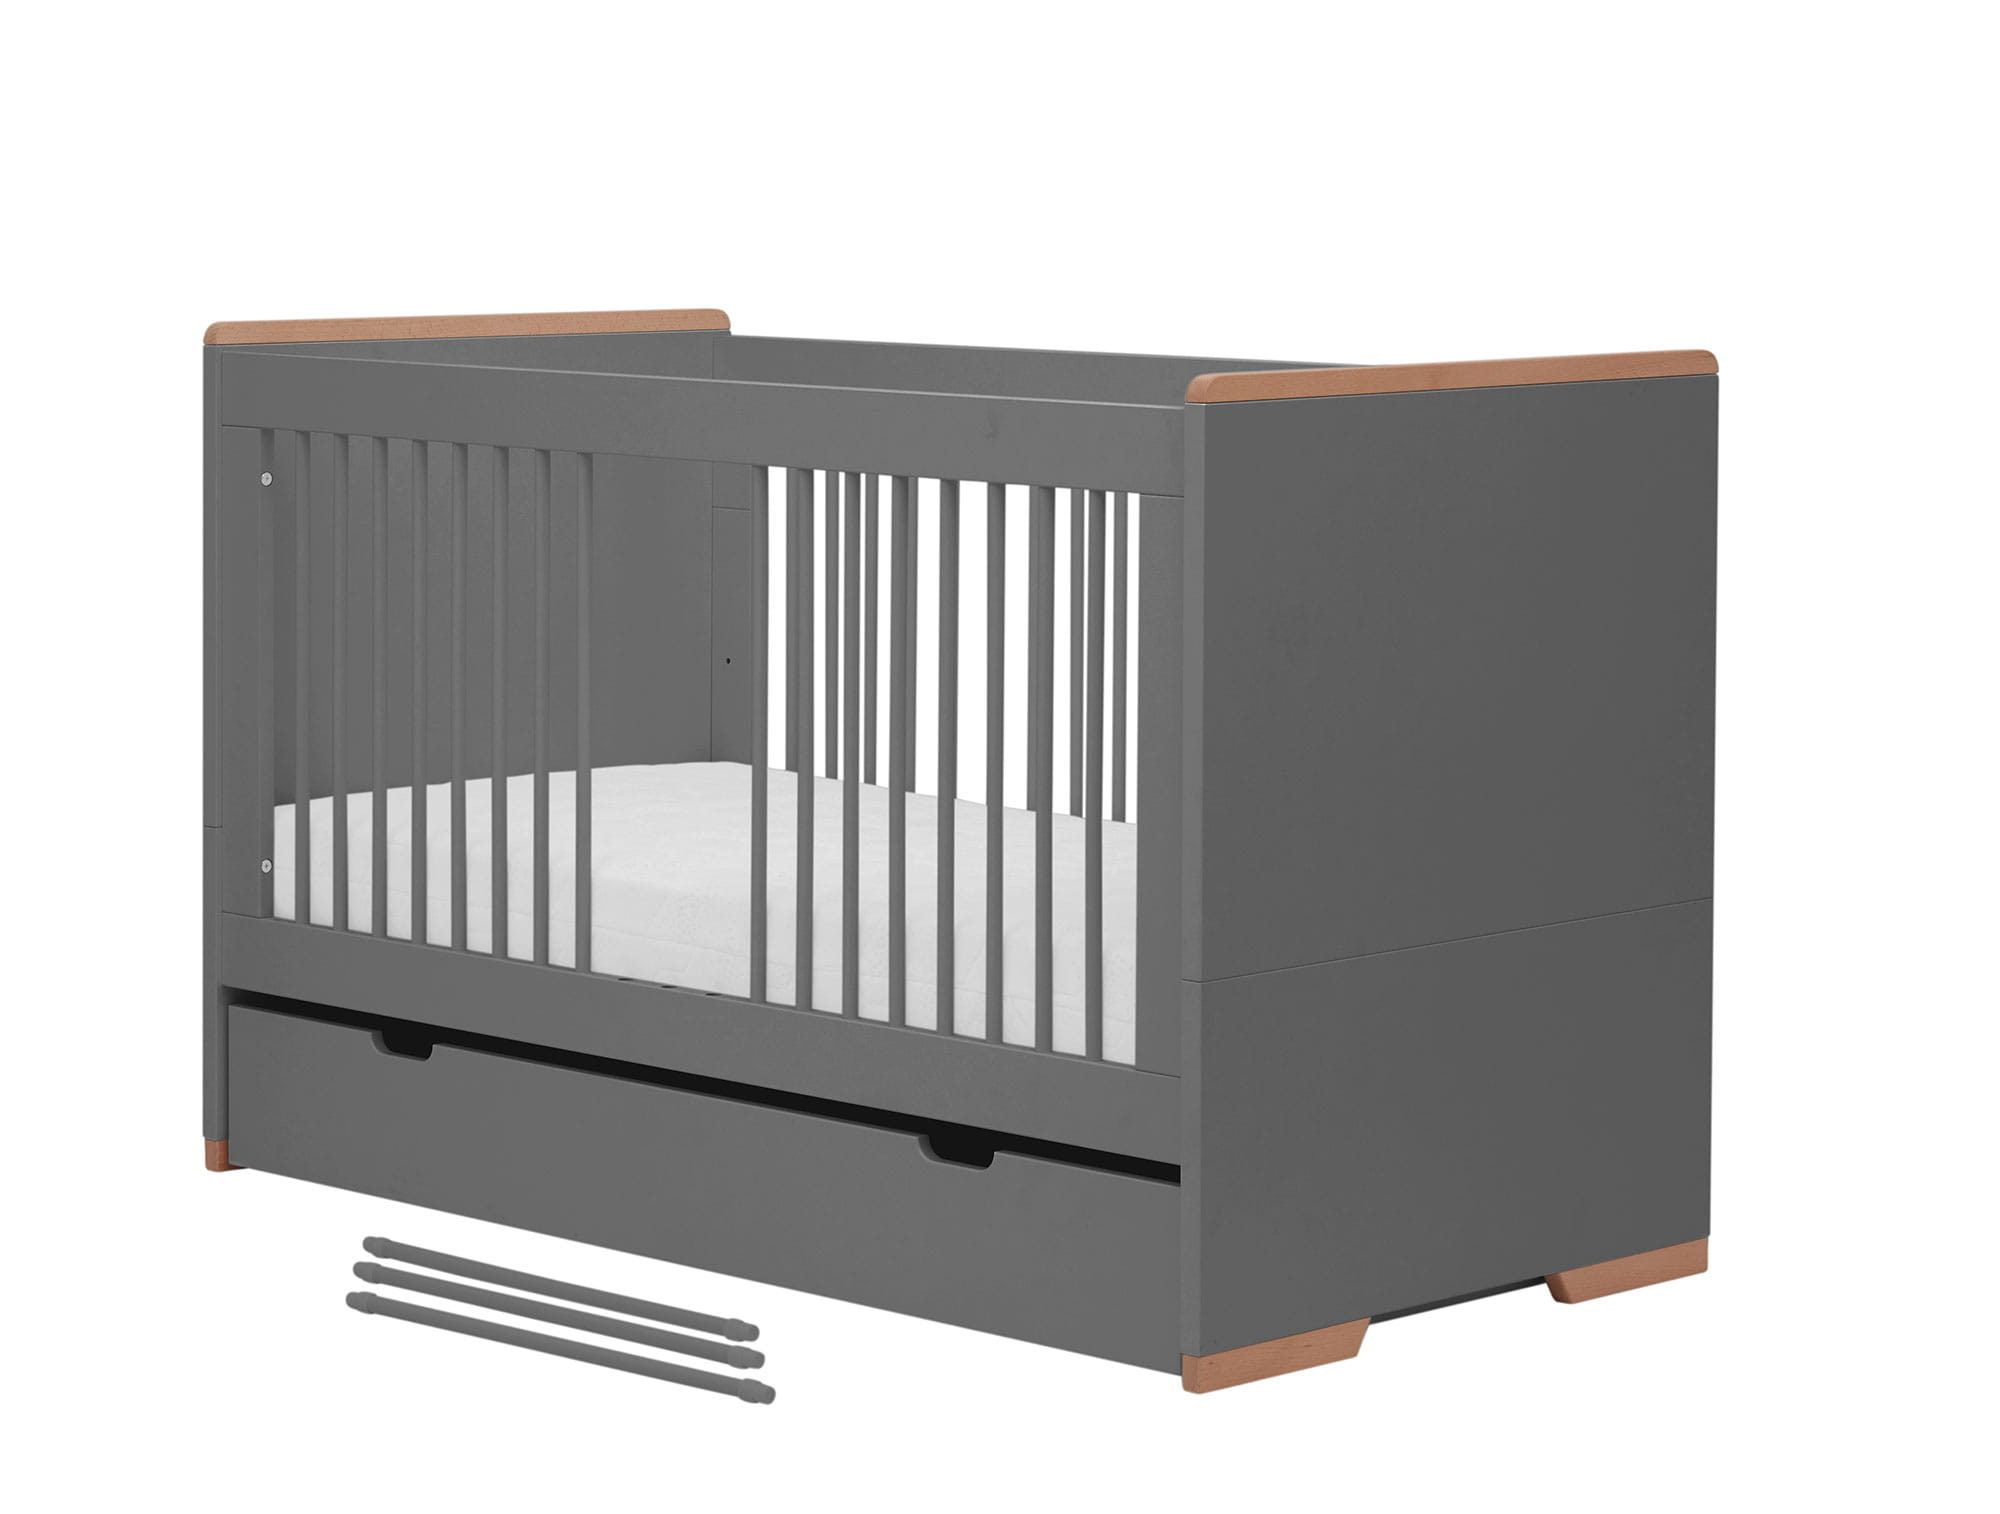 Snap_cot-bed140x70_dark_grey_2.jpg